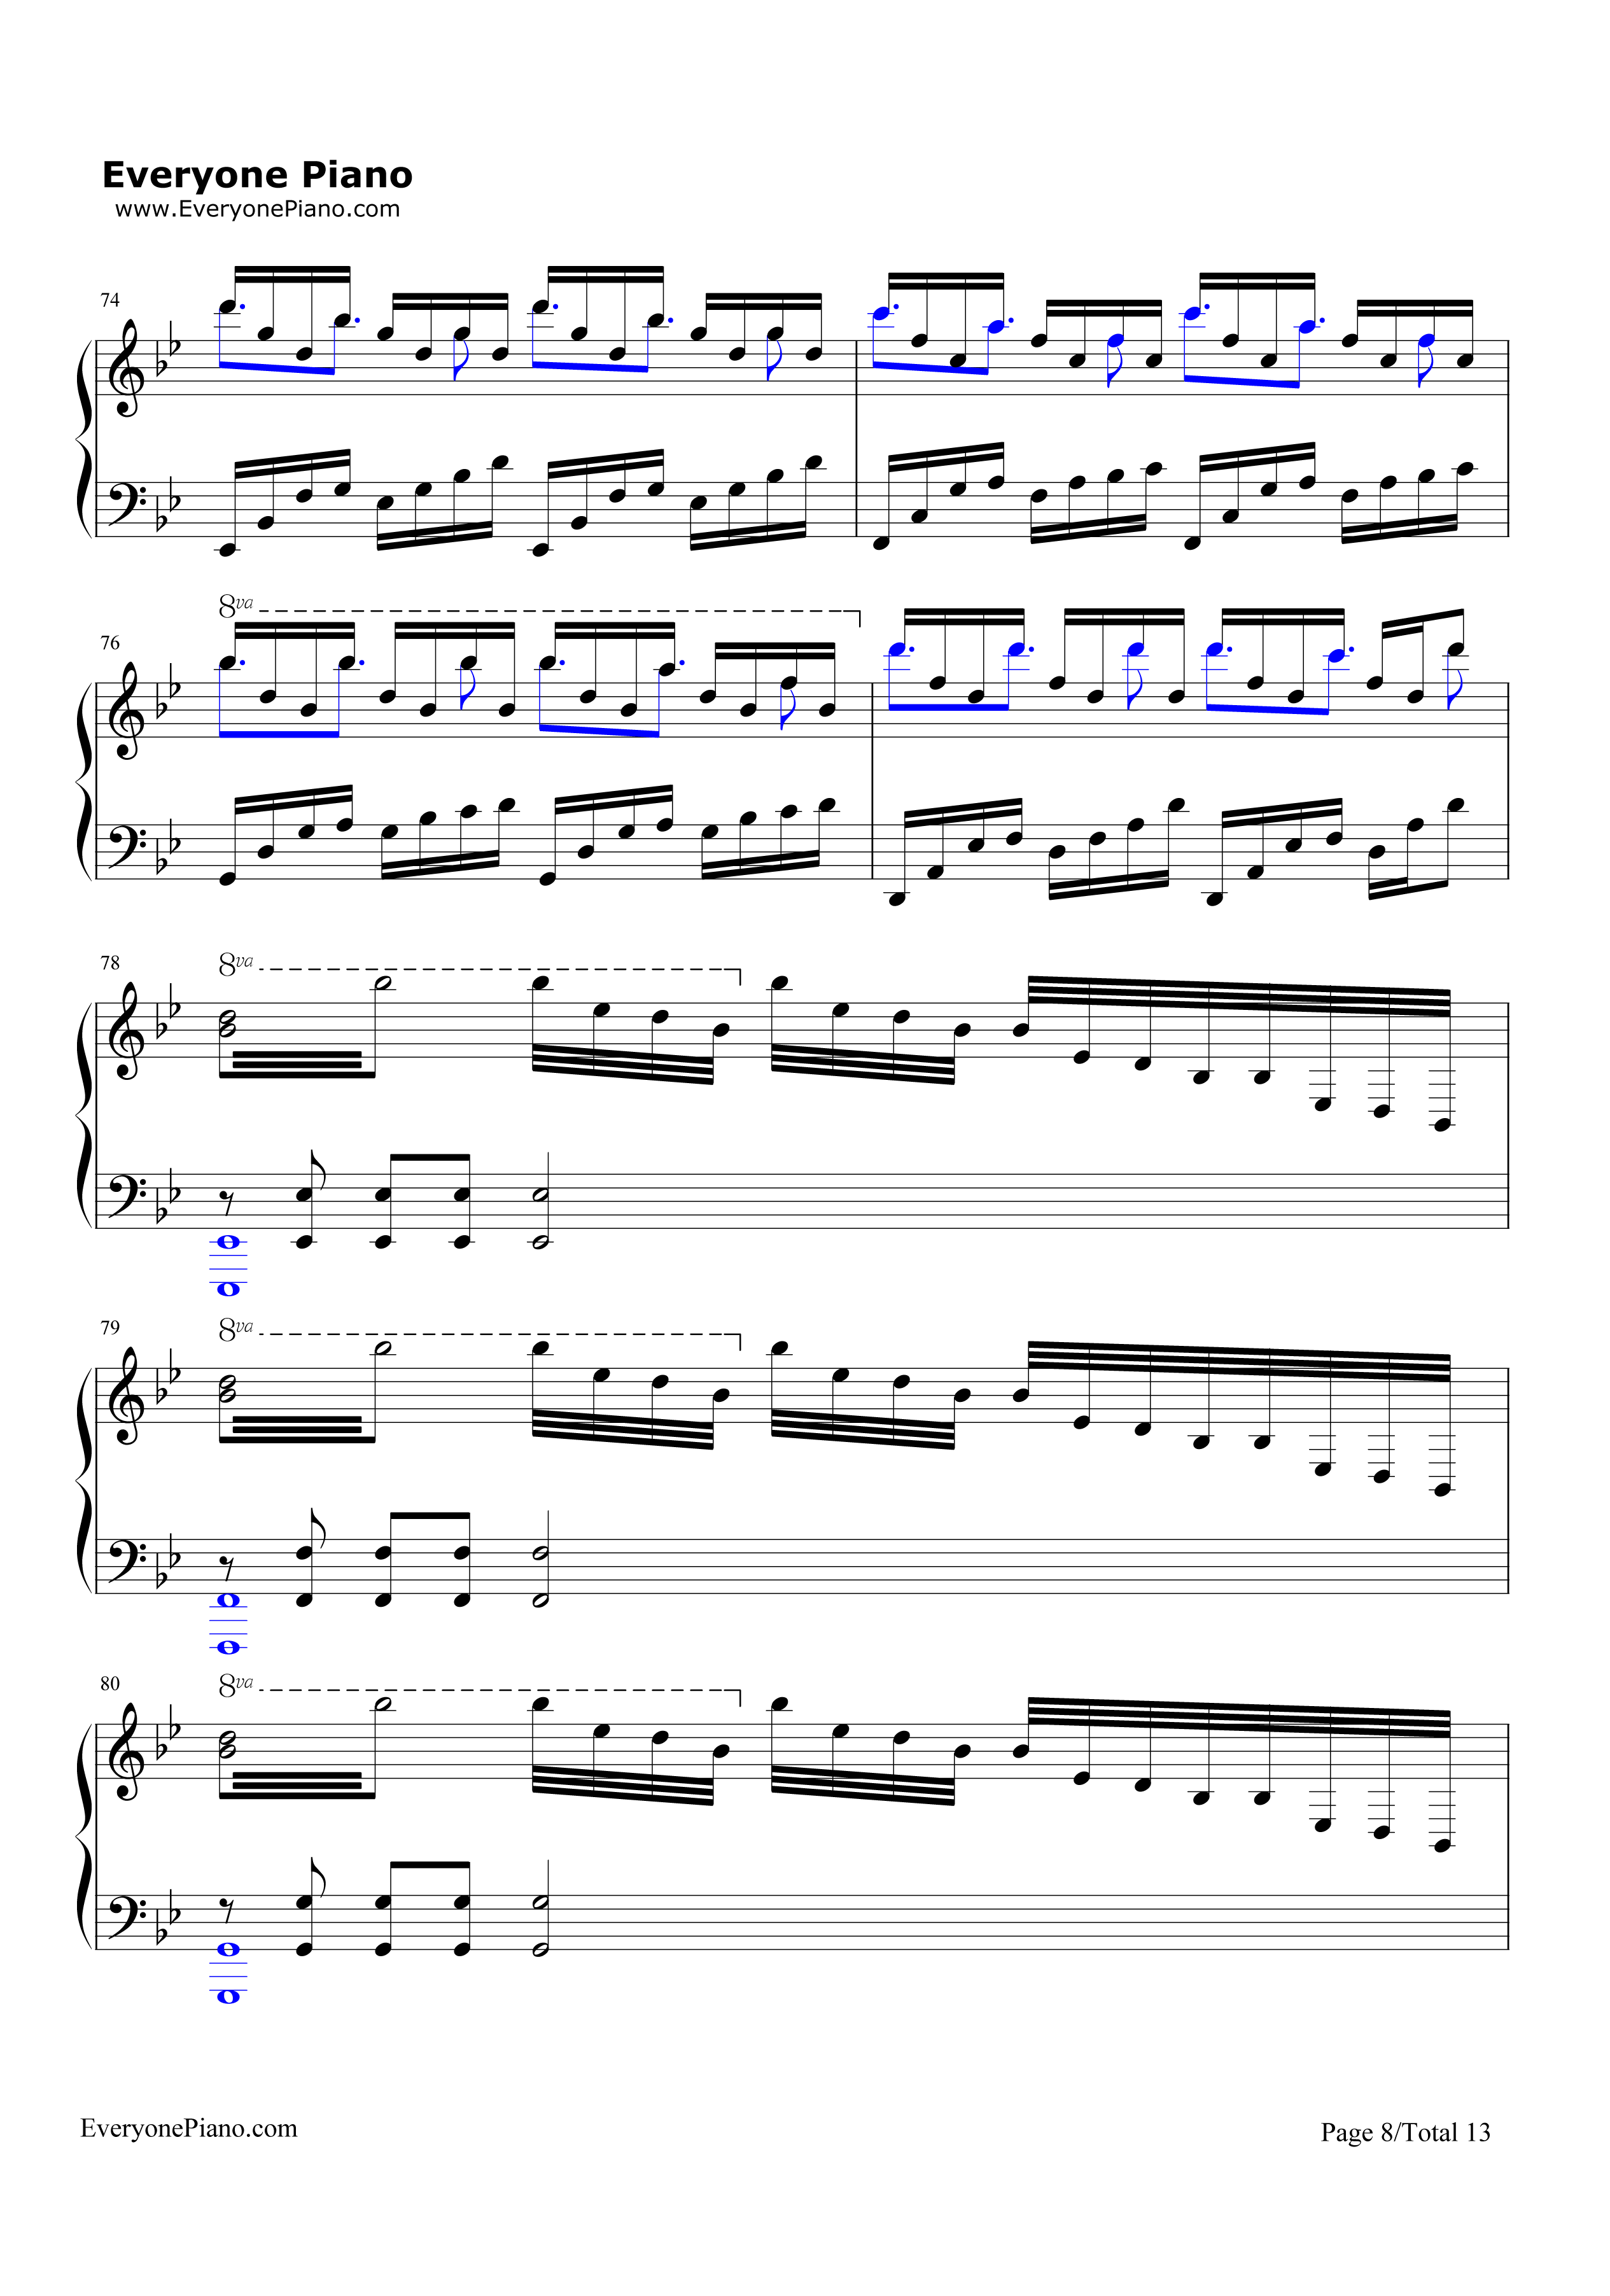 Unravel-Tokyo Ghoul Theme Stave Preview 8-Free Piano Sheet Music u0026 Piano Chords